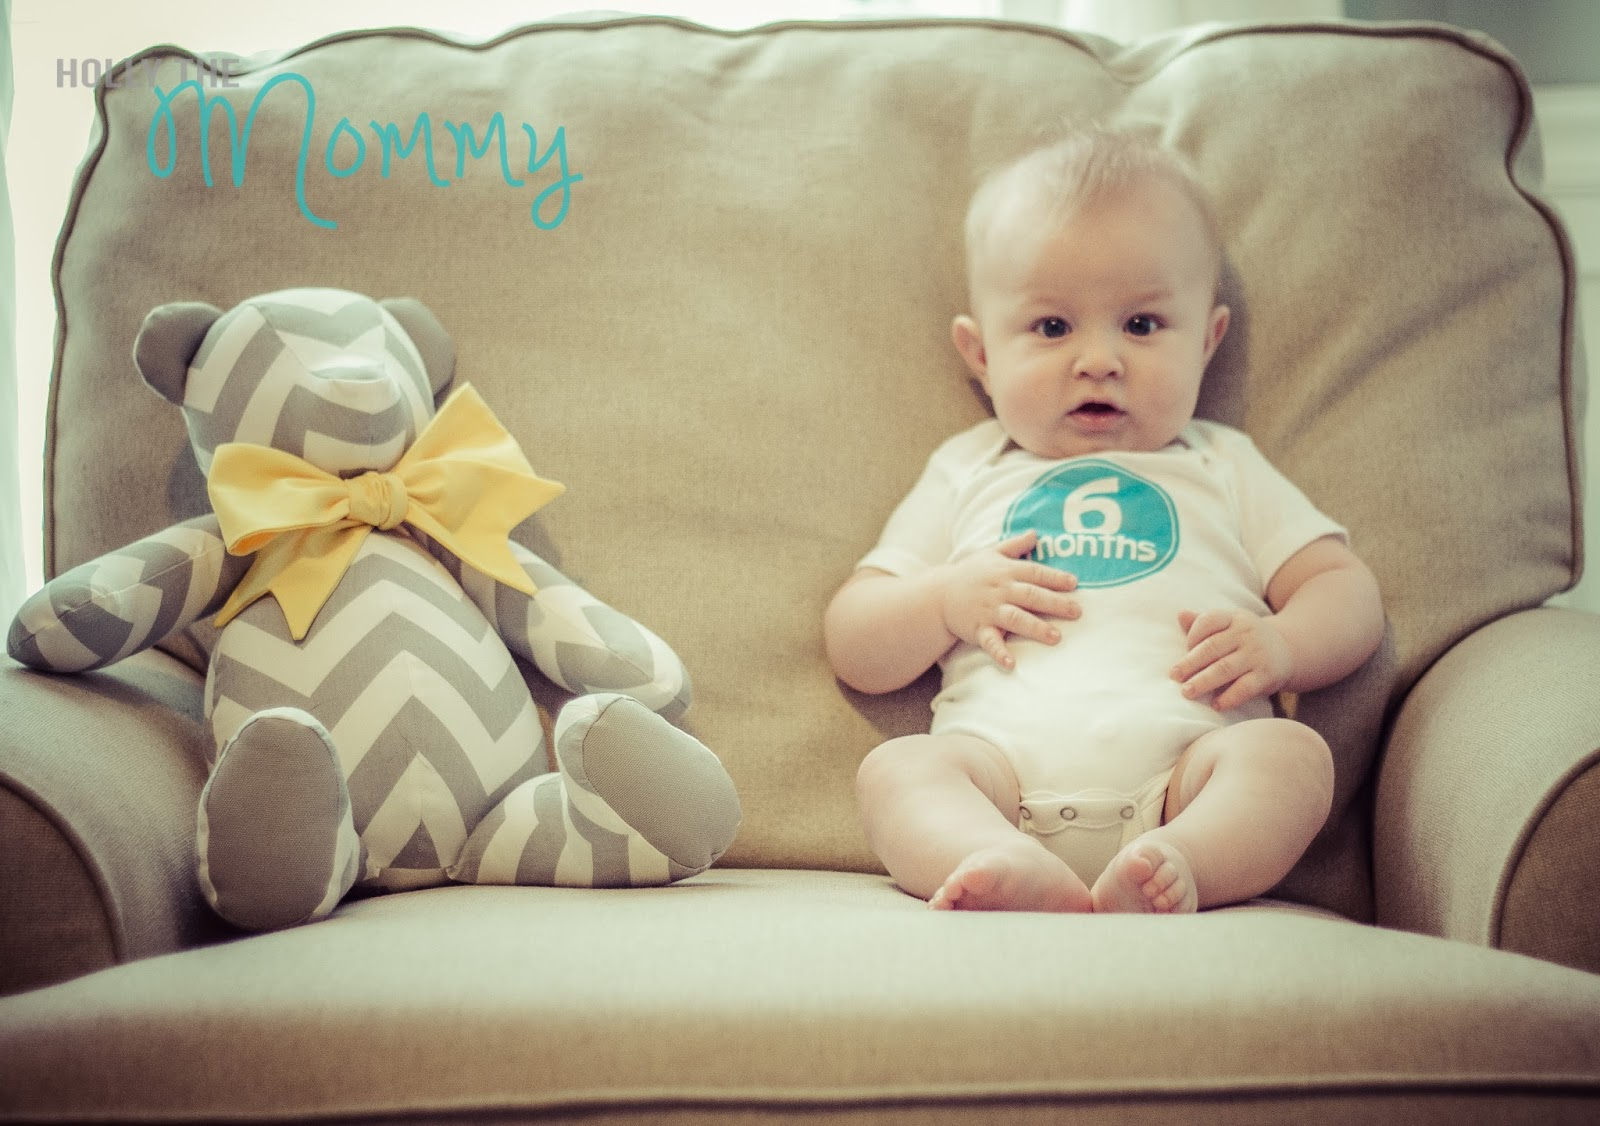 Baby pictures ideas 6 months the image for 6 month birthday decorations